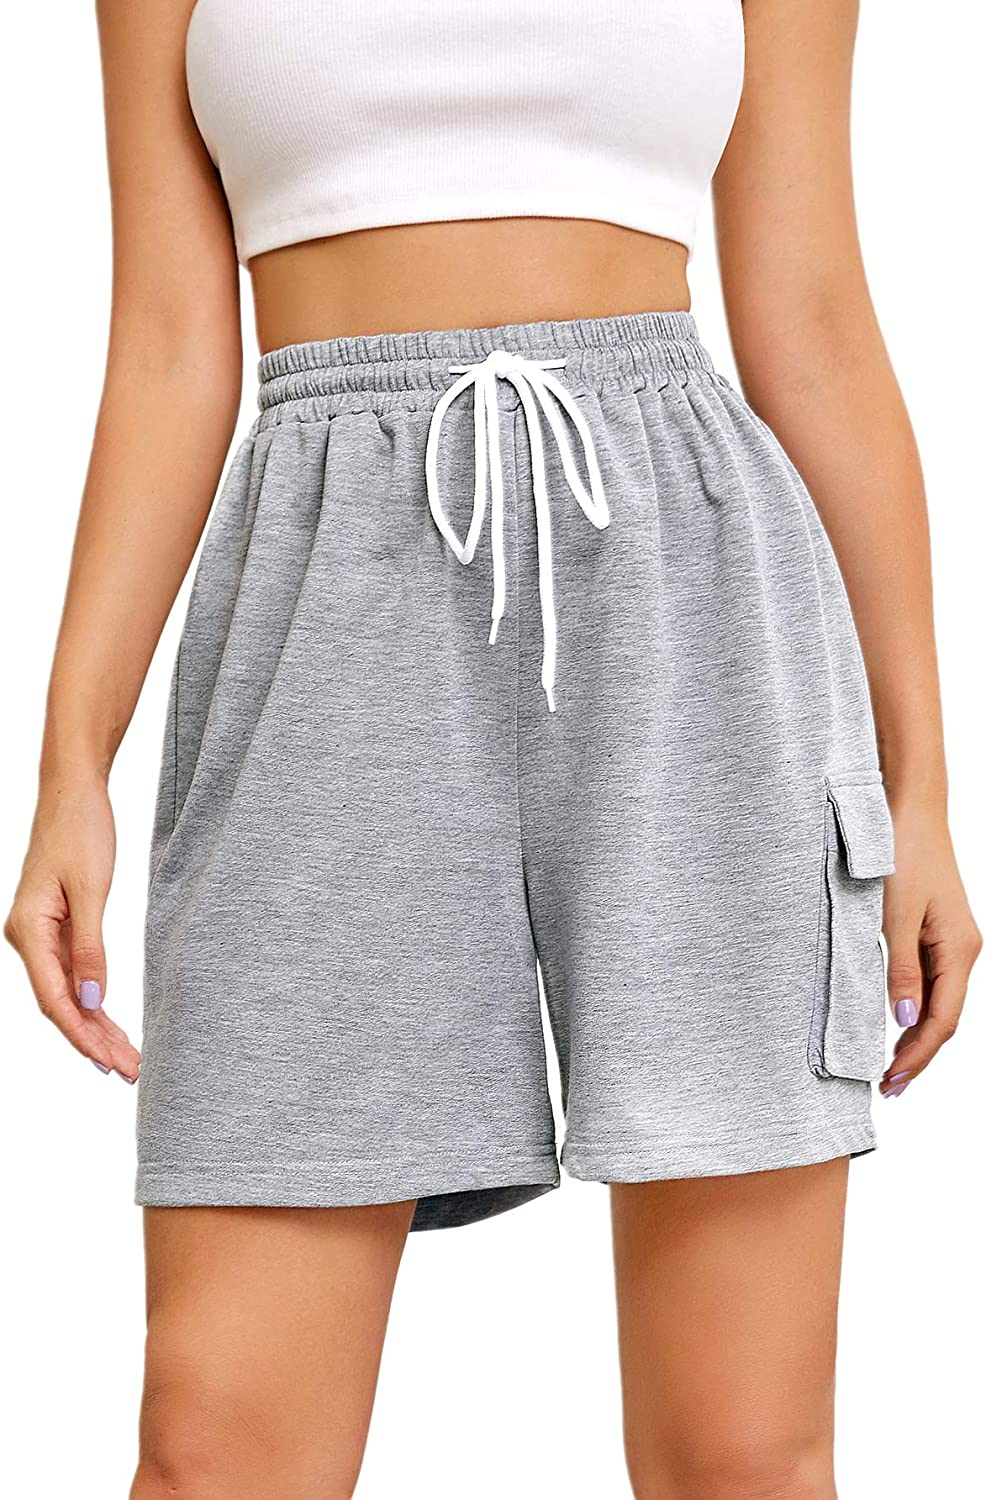 Floerns Women's Casual Elastic Waist Drawstring Lounge Shorts with Pockets